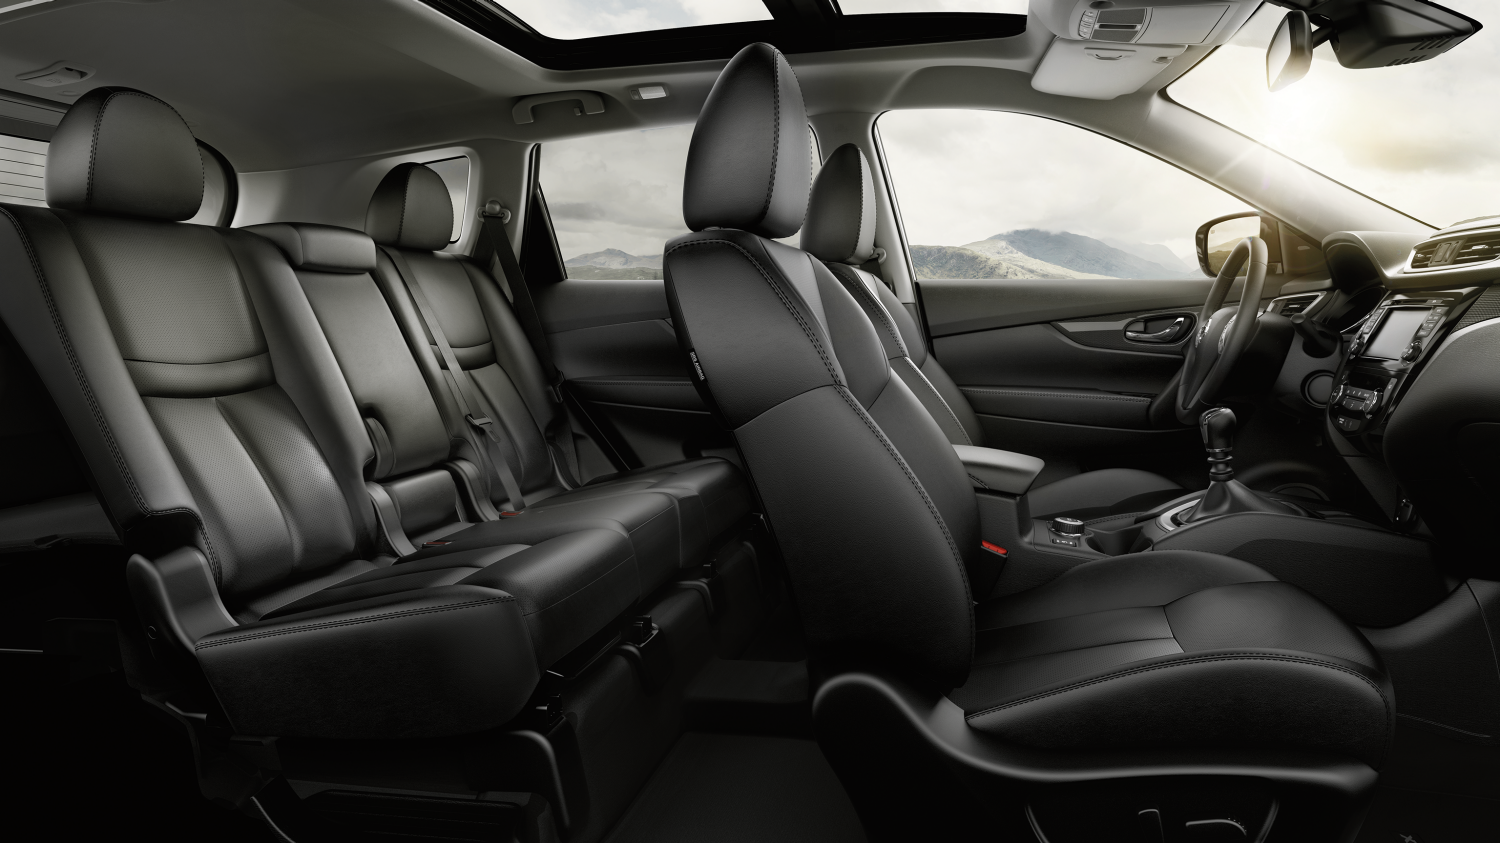 Nissan X-Trail - First two rows seating